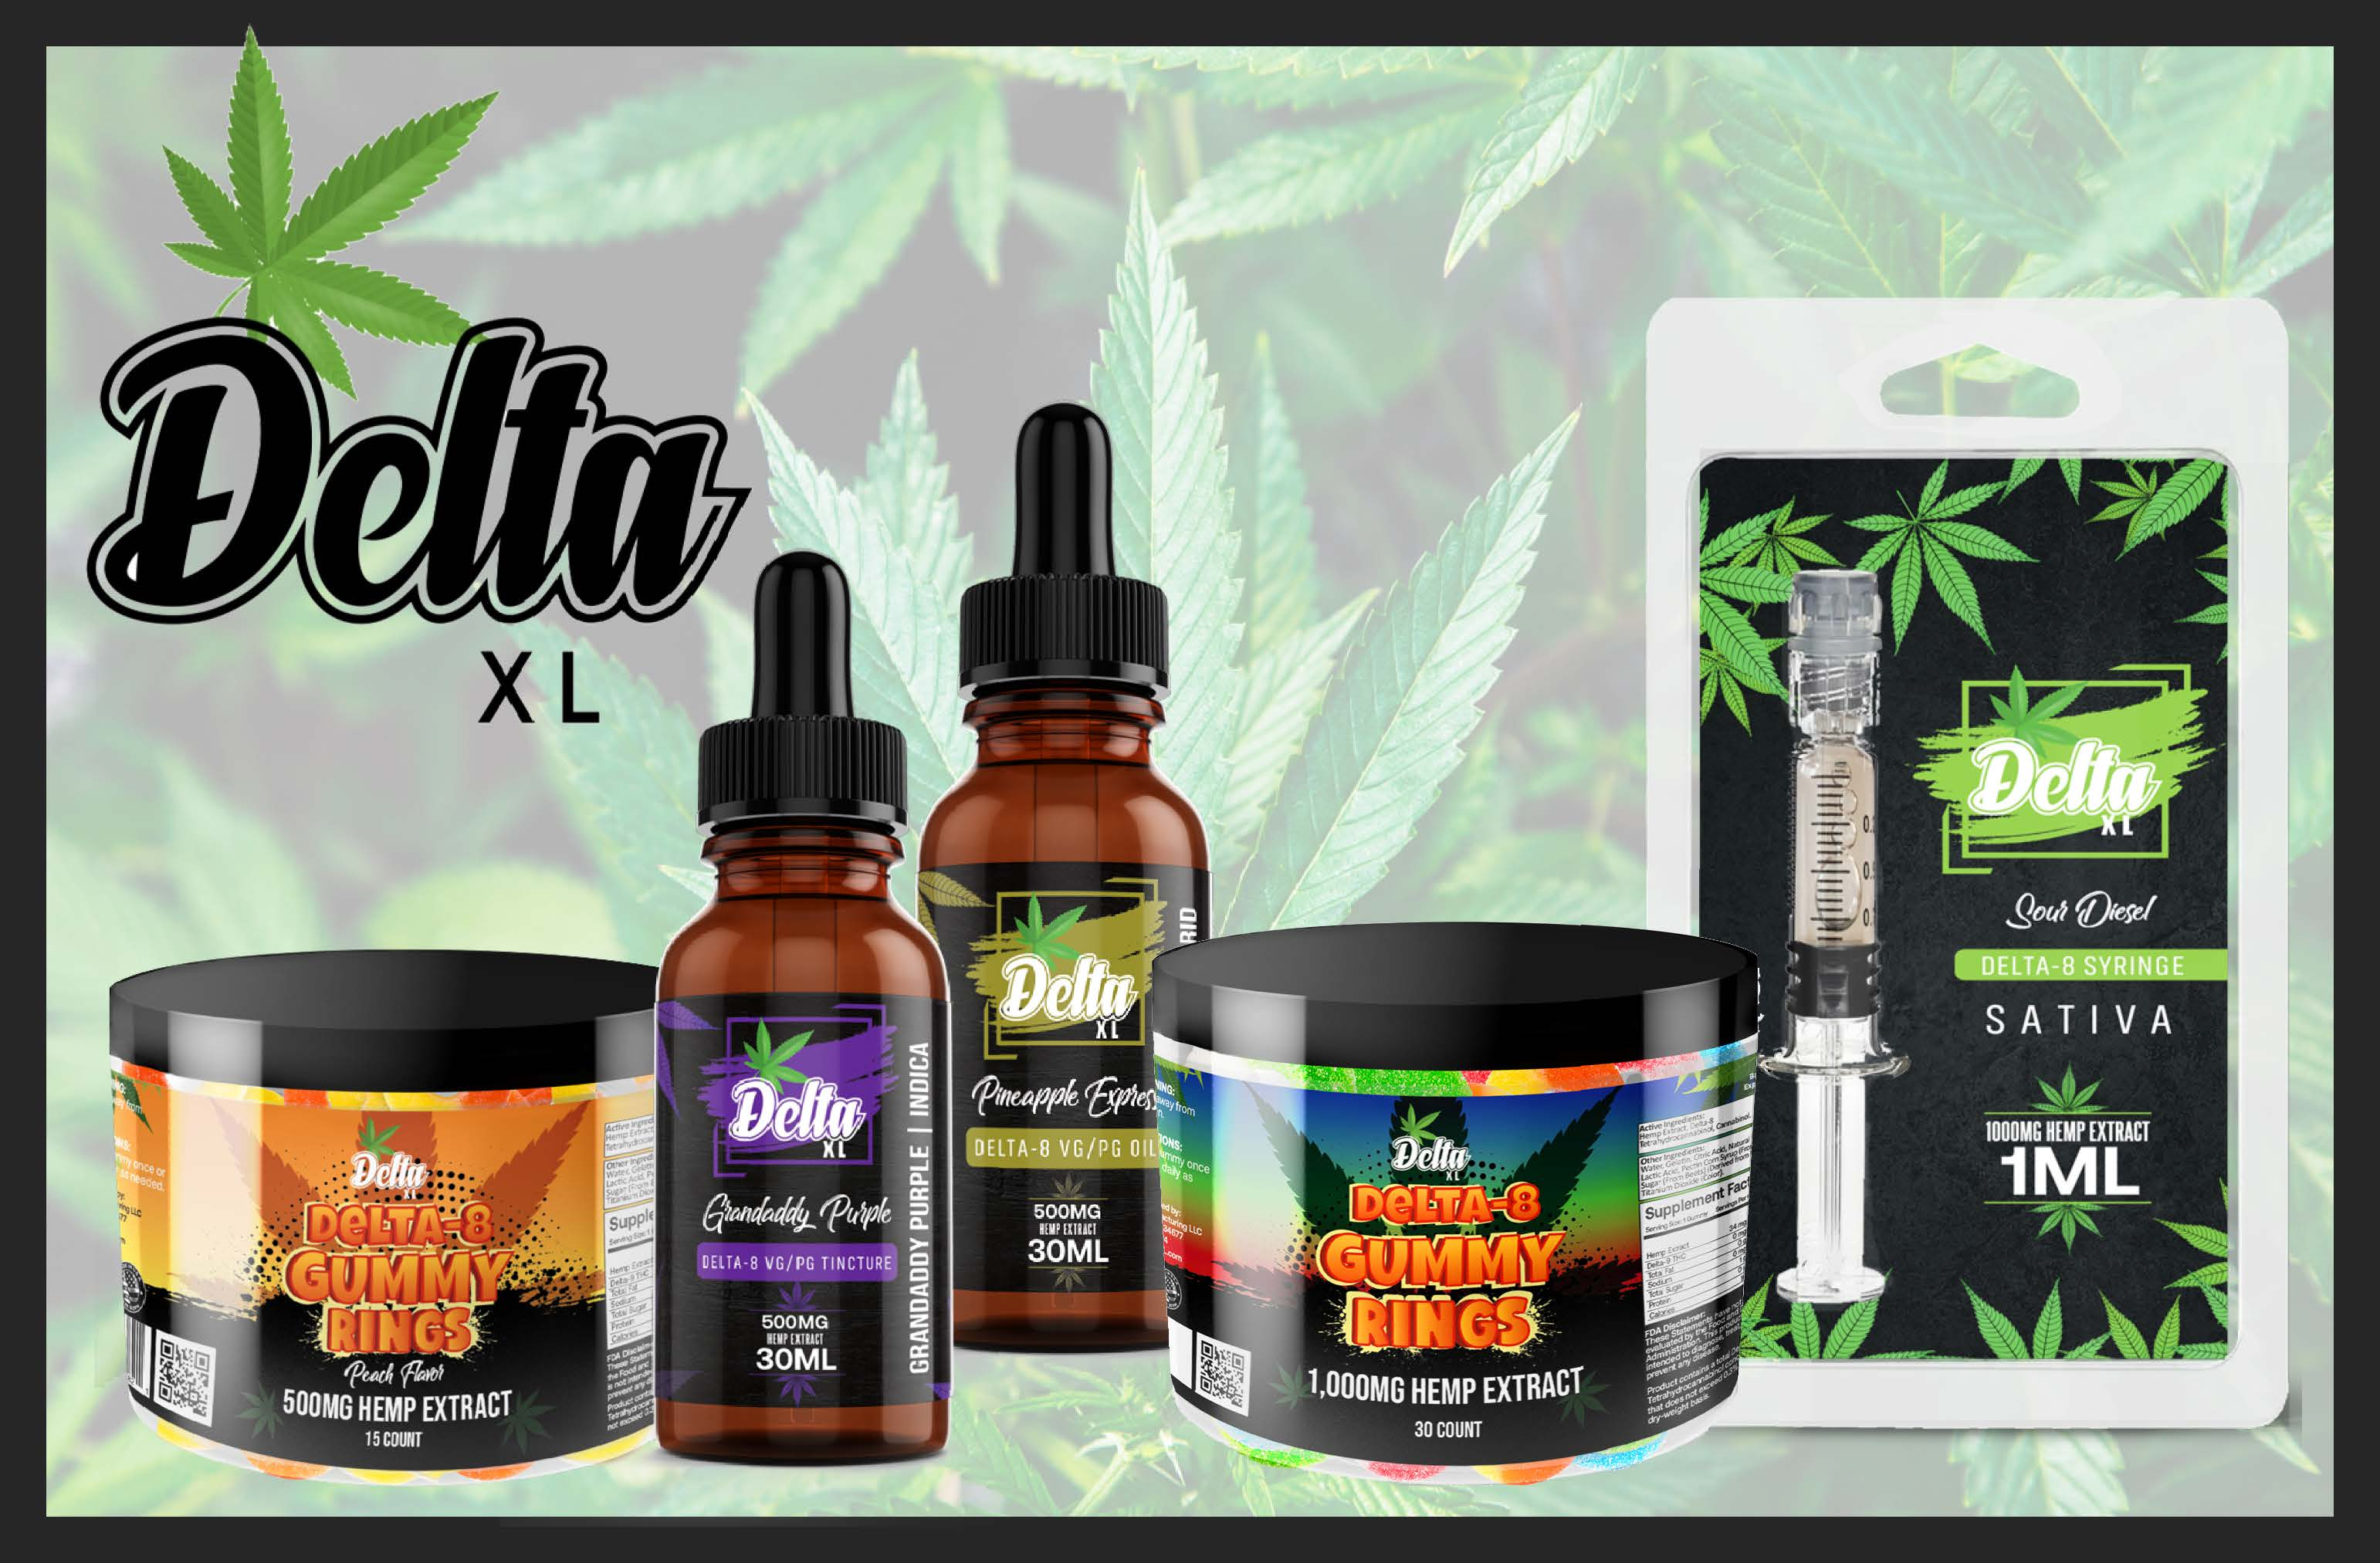 DeltaXL Delta 8 THC | Highest Quality Delta8 Distillate is utilized in every product | CBDResellers.com is the official Retailer & Distributor  for This Top 5 Rated D8 Products | Satisfaction Guaranteed